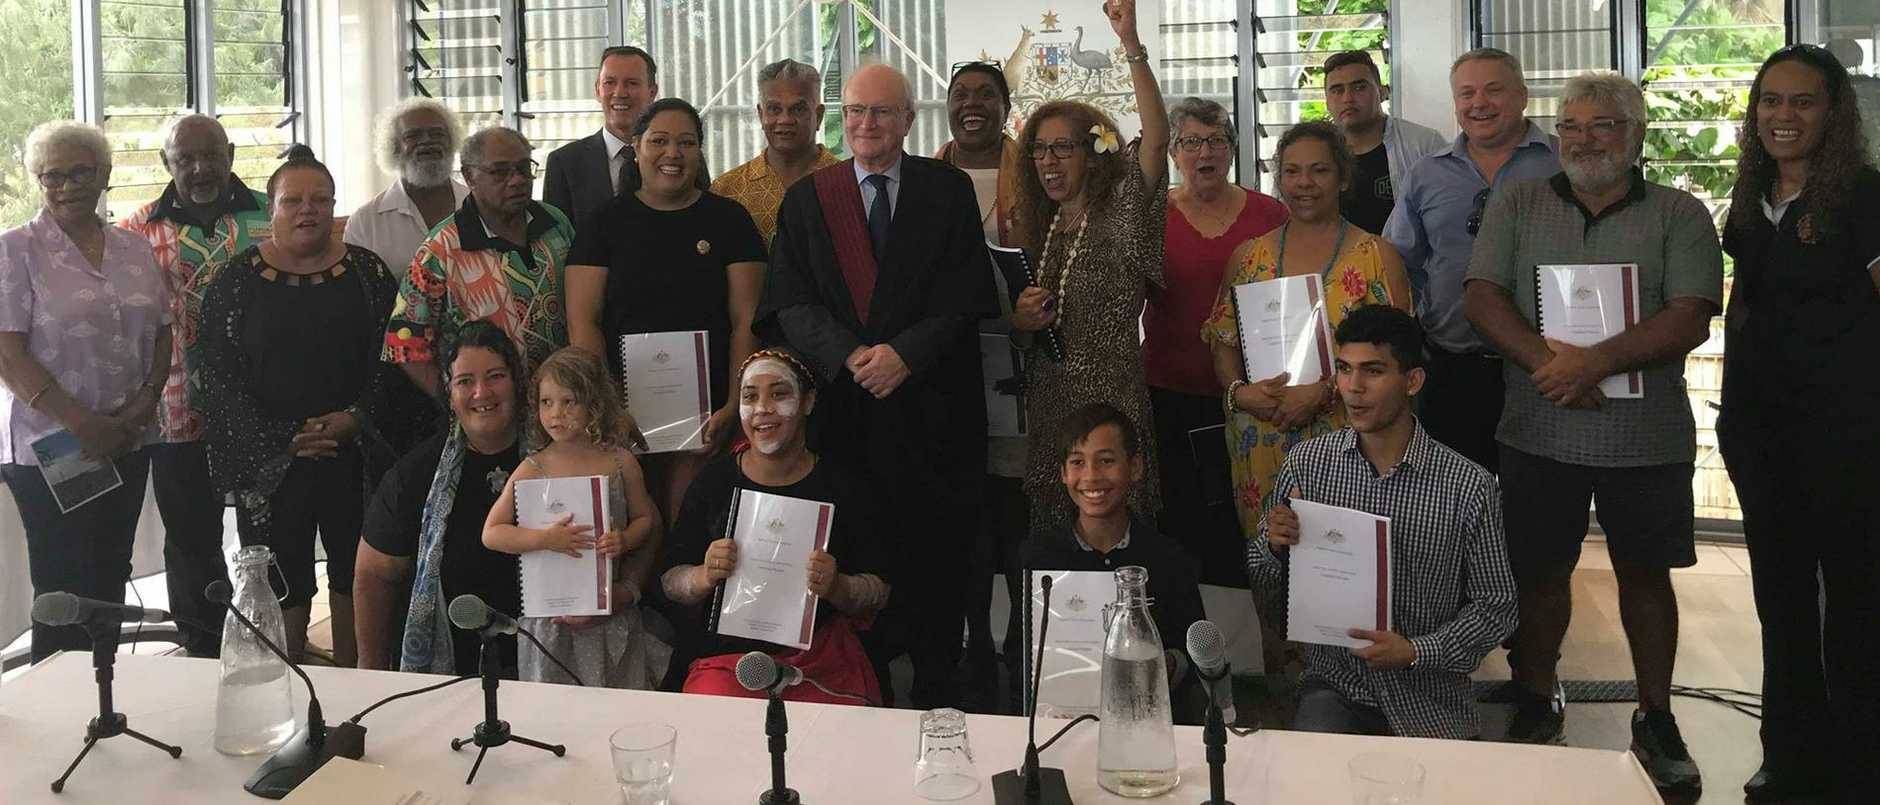 Justice Alan Robertson with the recipients of the native land title claim.